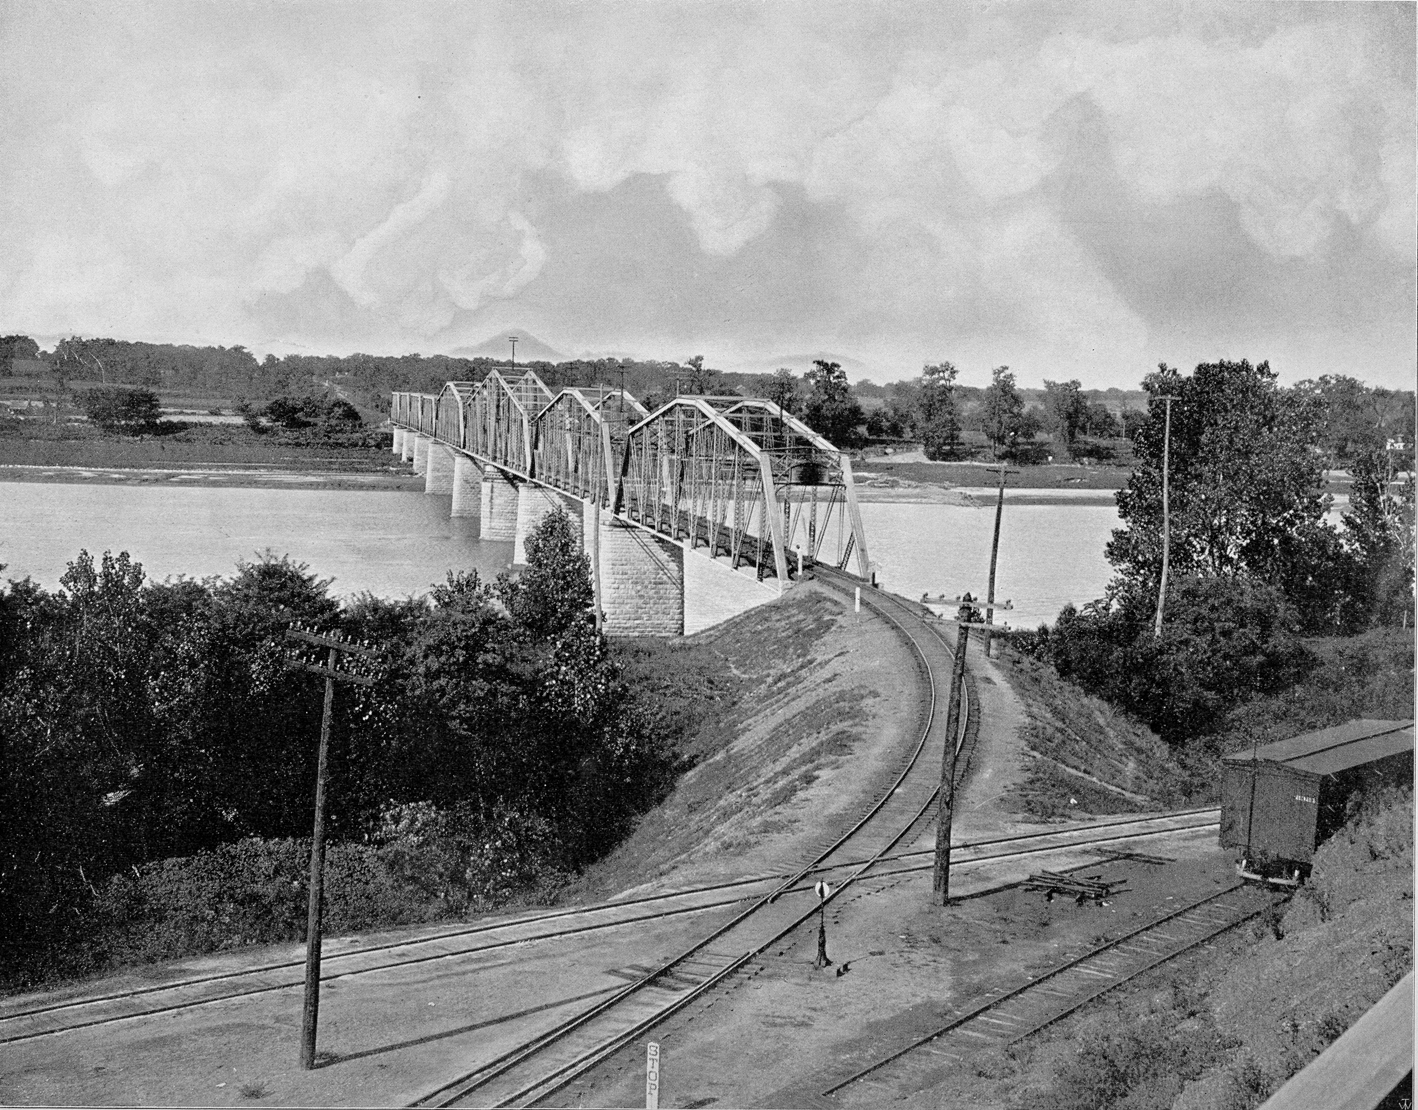 Frisco Bridge over Arkansas River